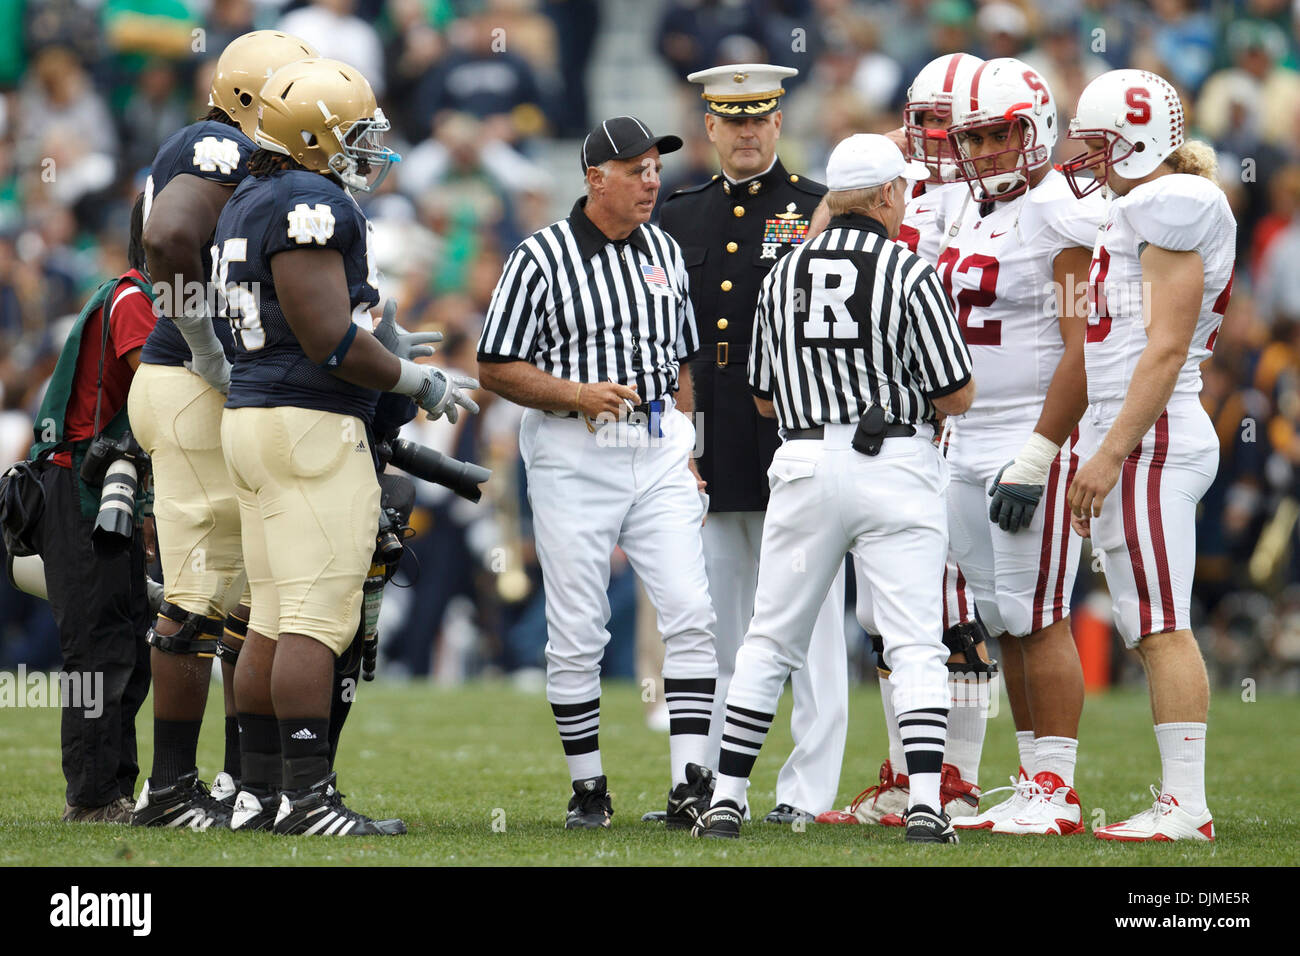 Sept. 25, 2010 - South Bend, Indiana, United States of America - Coin flip prior to NCAA football game between Stanford and Notre Dame.  The Stanford Cardinal defeated the Notre Dame Fighting Irish 37-14 in game at Notre Dame Stadium in South Bend, Indiana. (Credit Image: © John Mersits/Southcreek Global/ZUMApress.com) - Stock Image